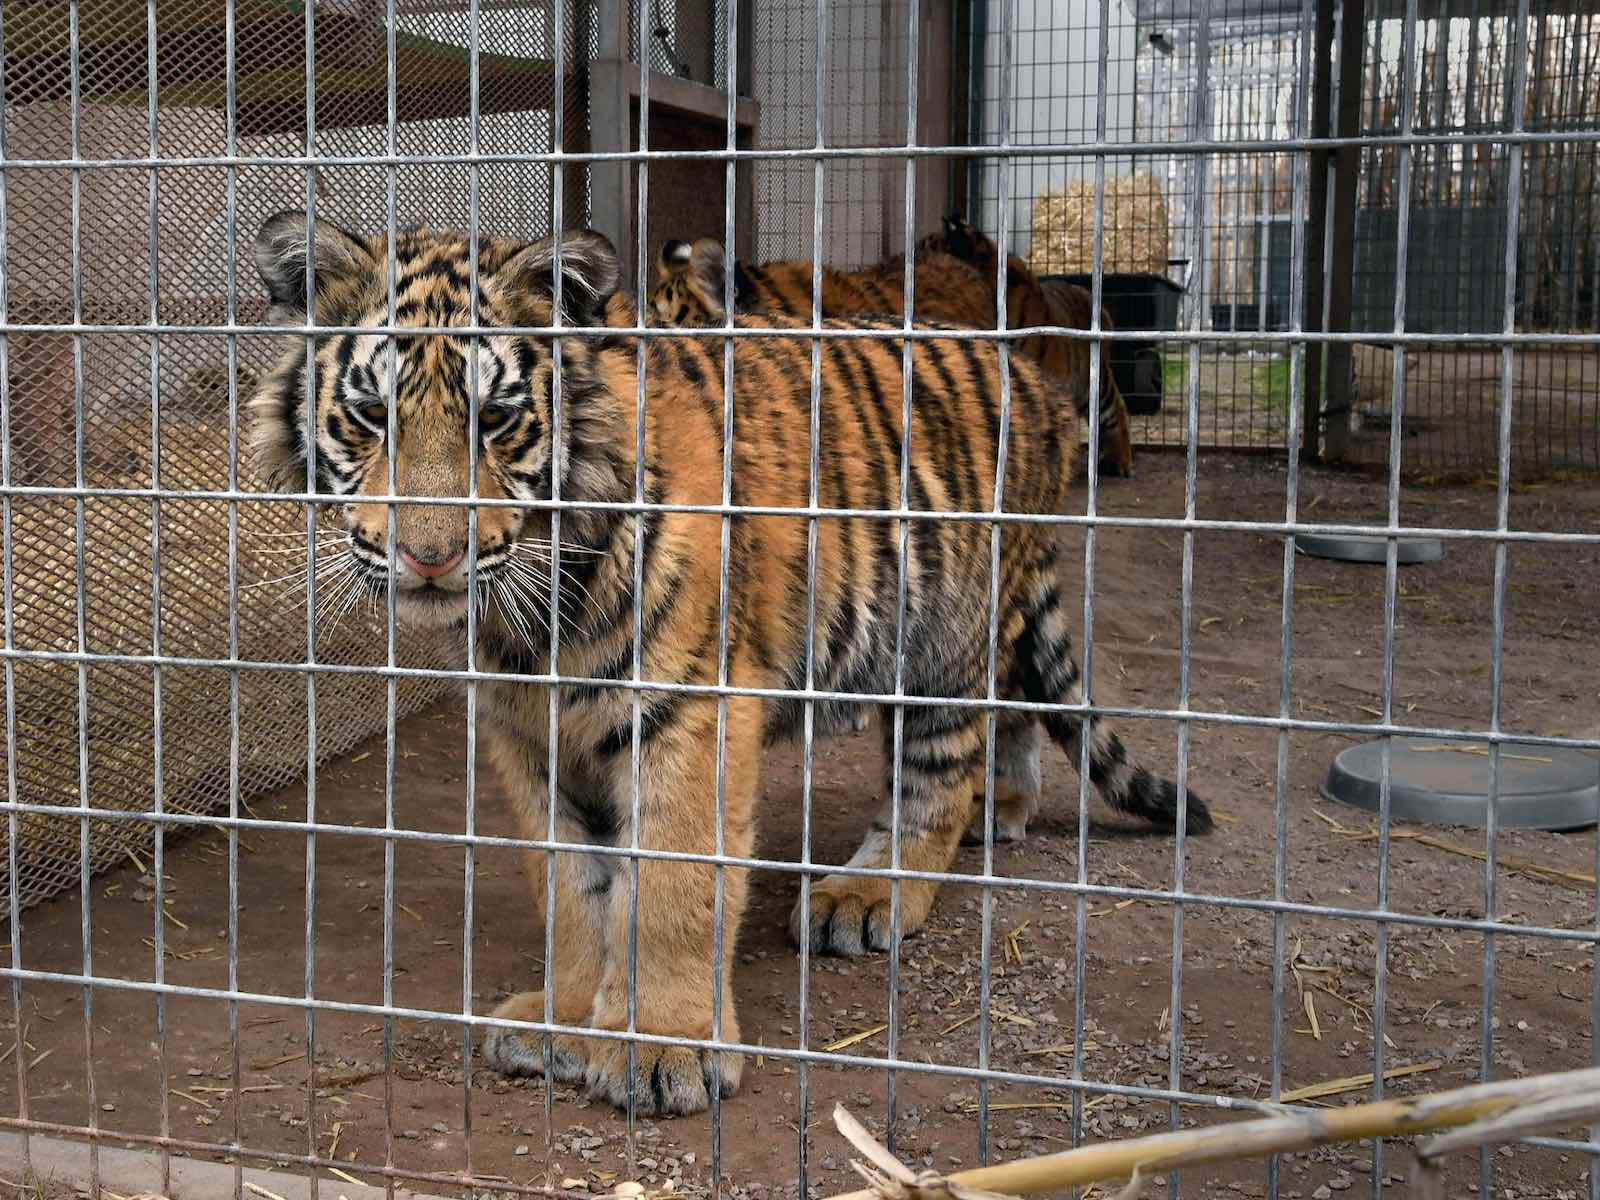 Here's why Joe Exotic the 'Tiger King' was big cats' greatest enemy